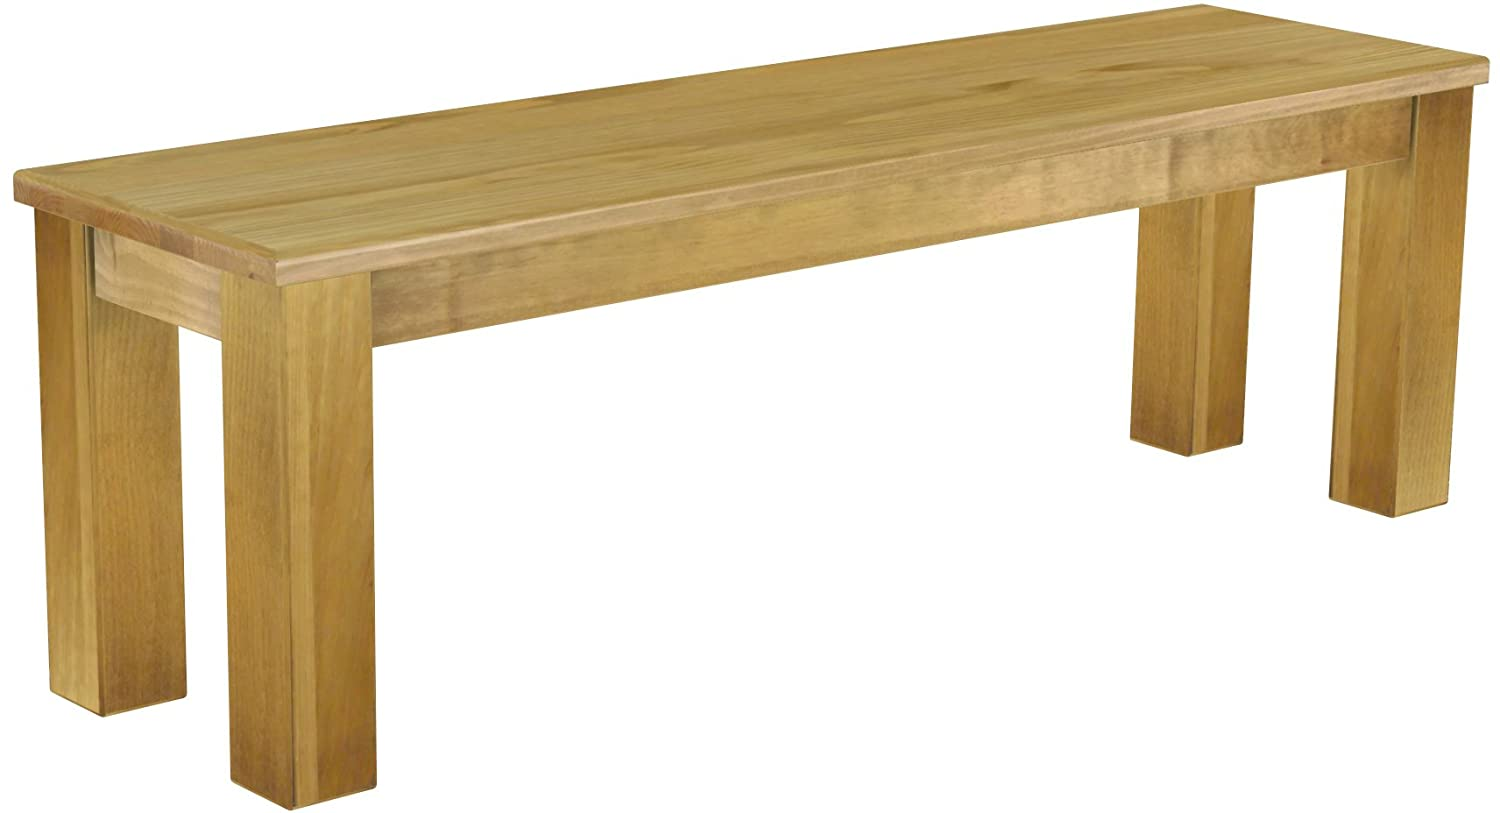 Solid Pine Bench Length 140 cm Waxed - Oiled Light Brown